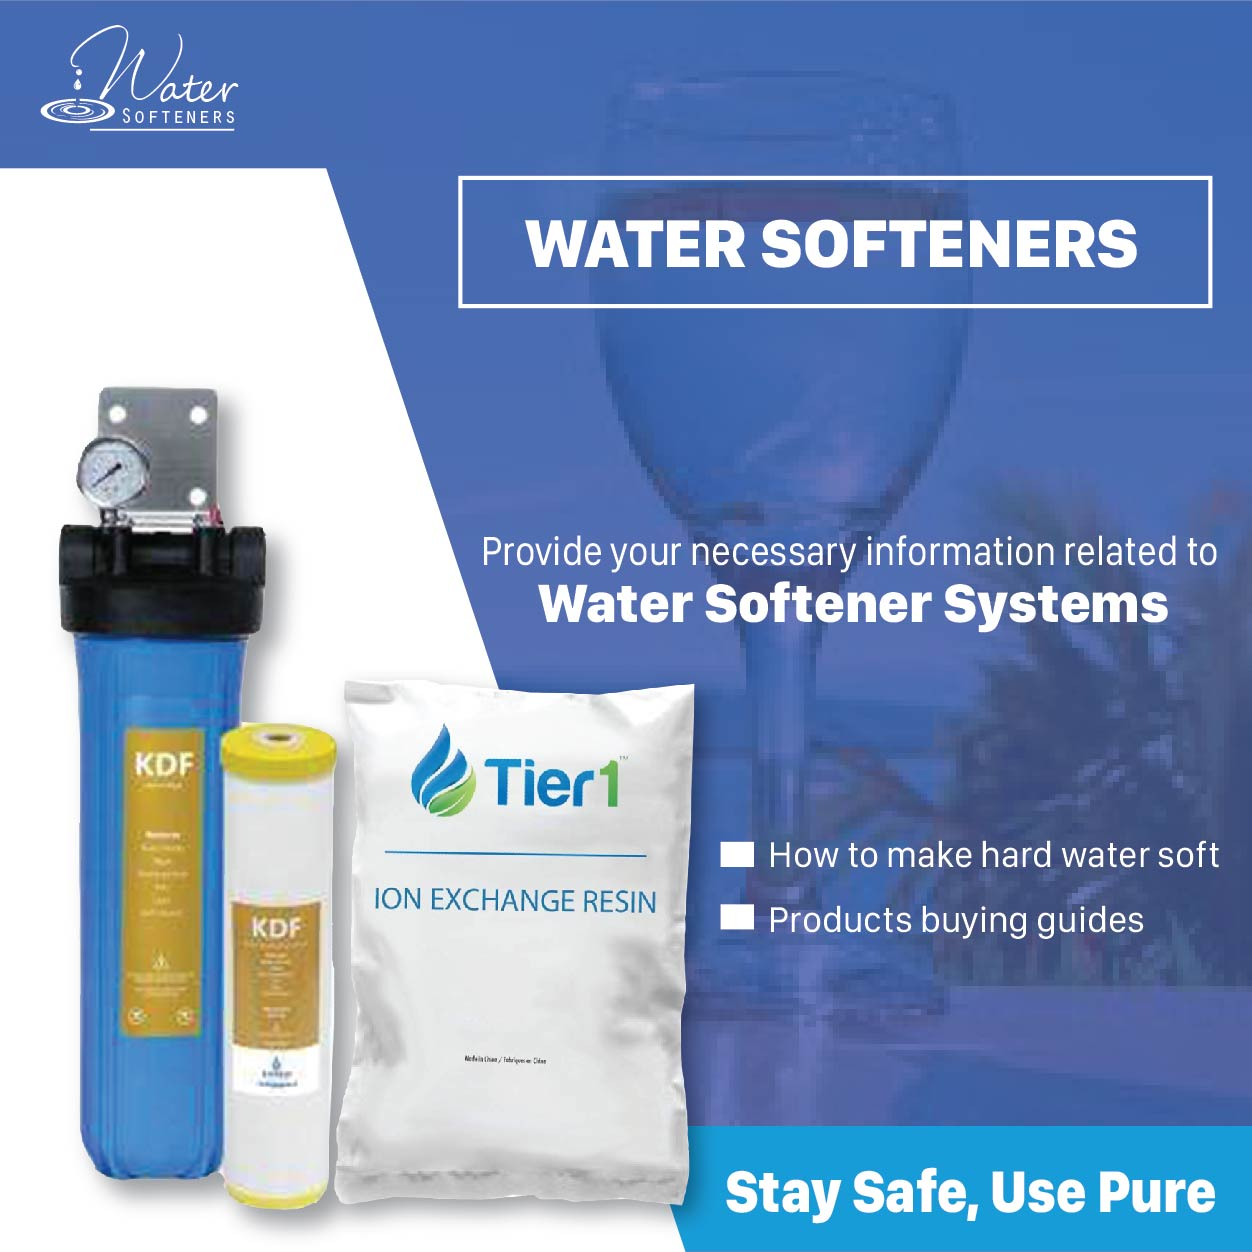 Water Softeners - Watersoftenersblog.com